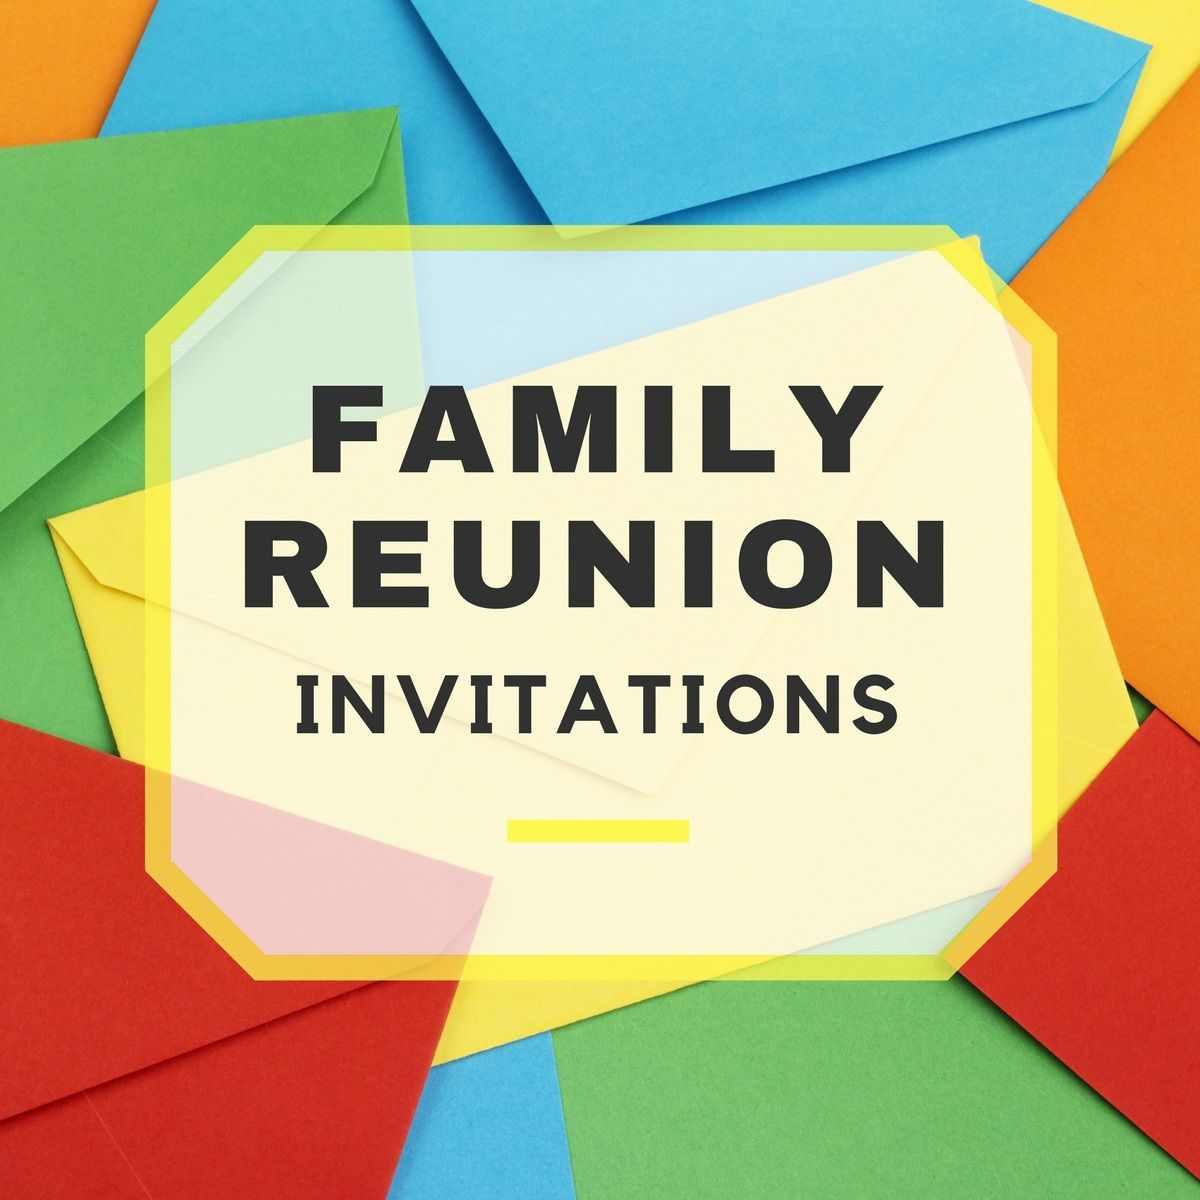 006 Remarkable Free Printable Family Reunion Invitation Template Highest Clarity  Templates FlyerFull